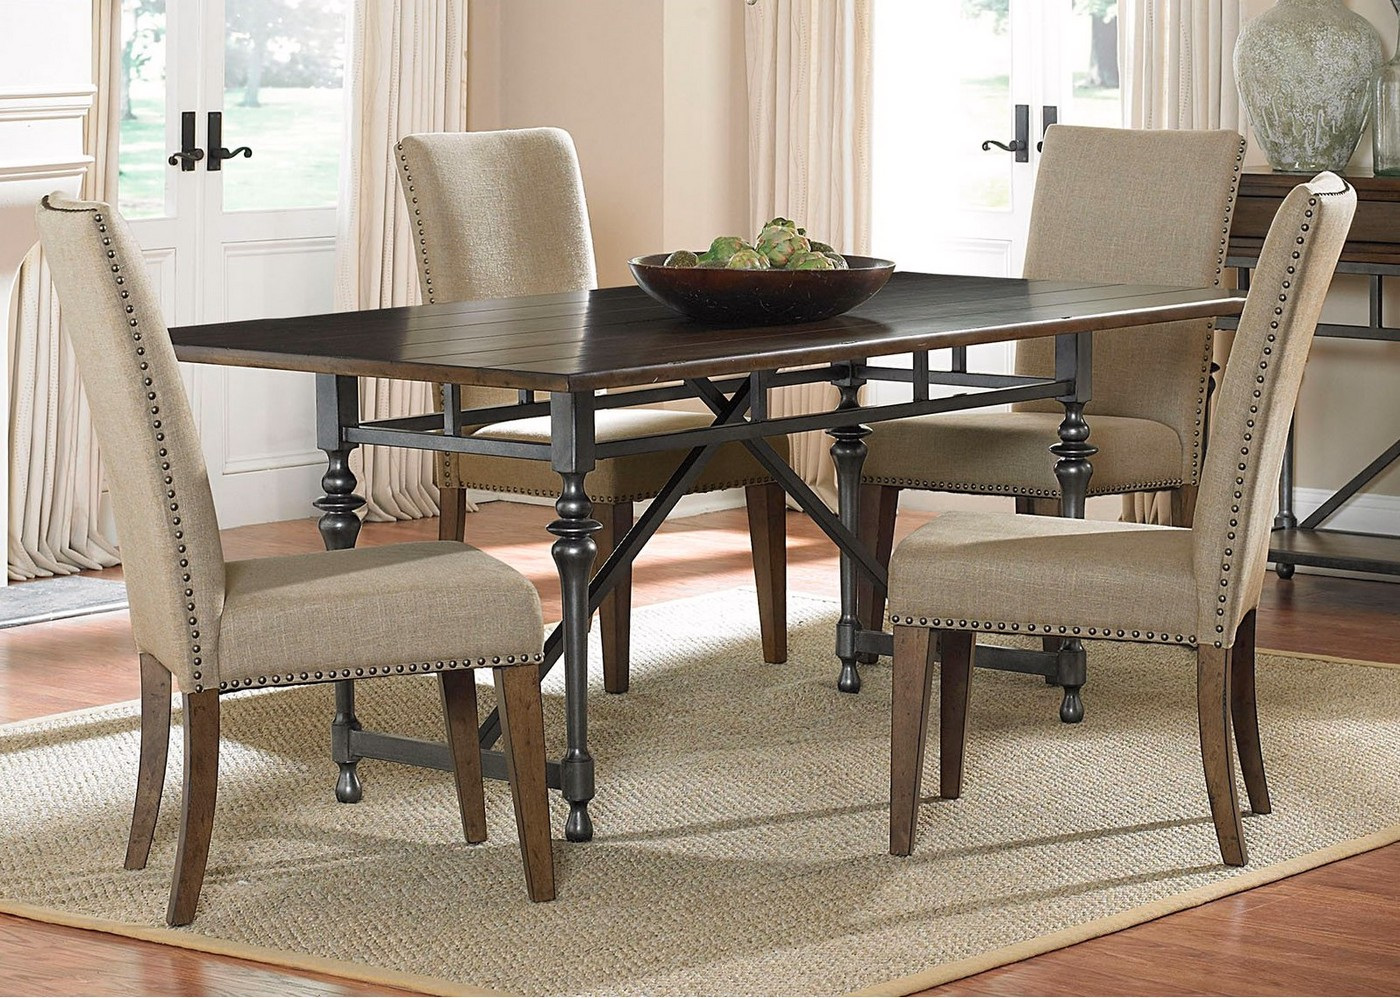 Ivy park modern farmhouse casual dining room set for Informal dining